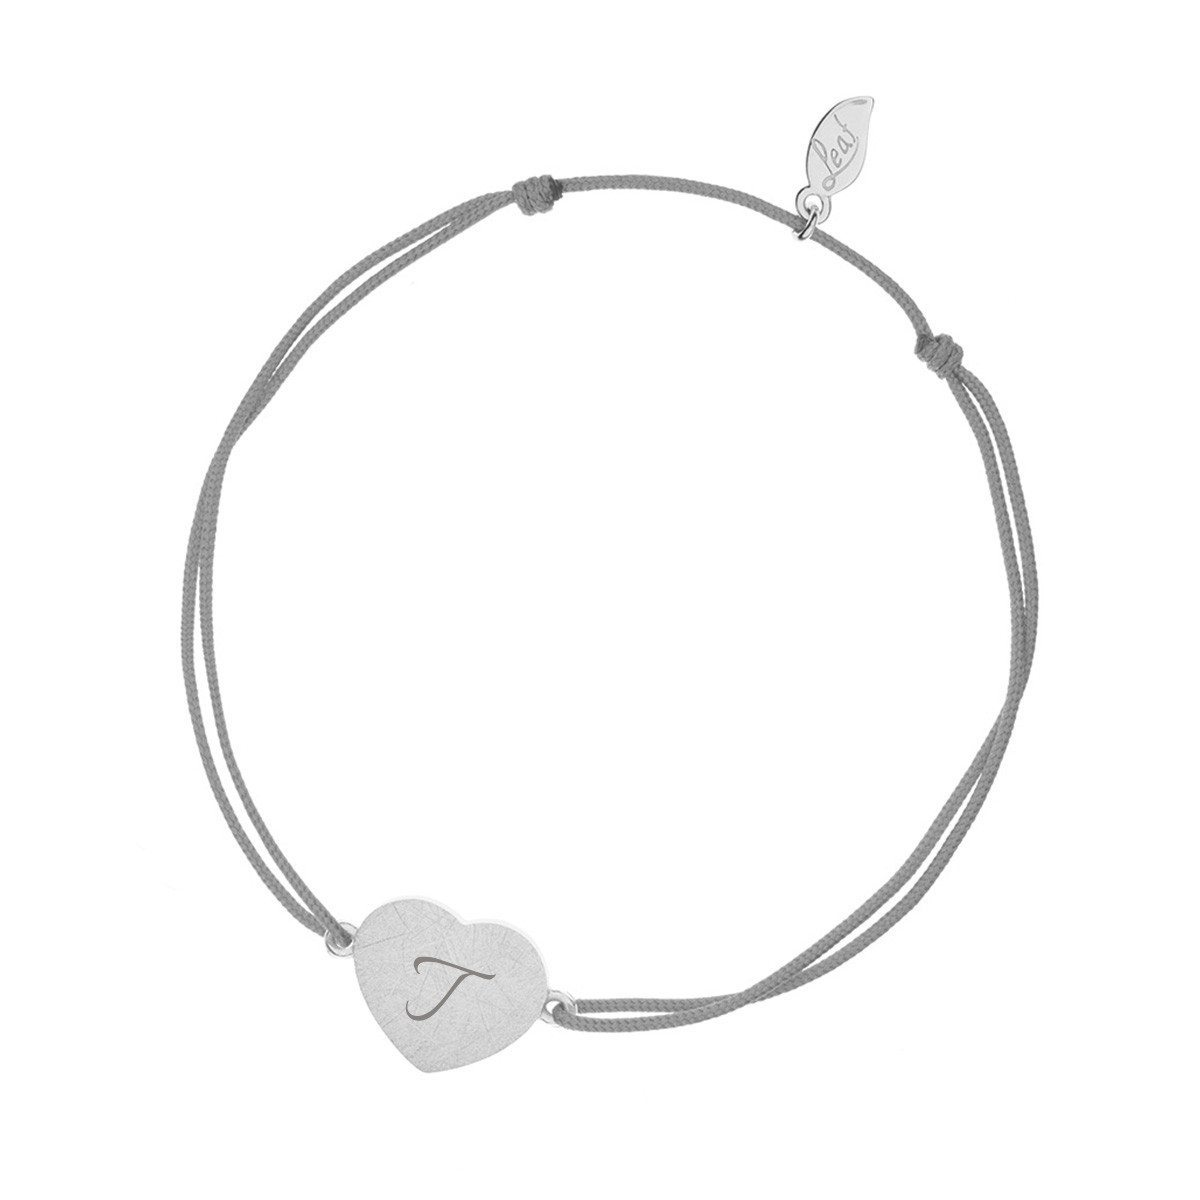 PERSONALIZED SILVER HEART-DISC BRACELET WITH INITIALS